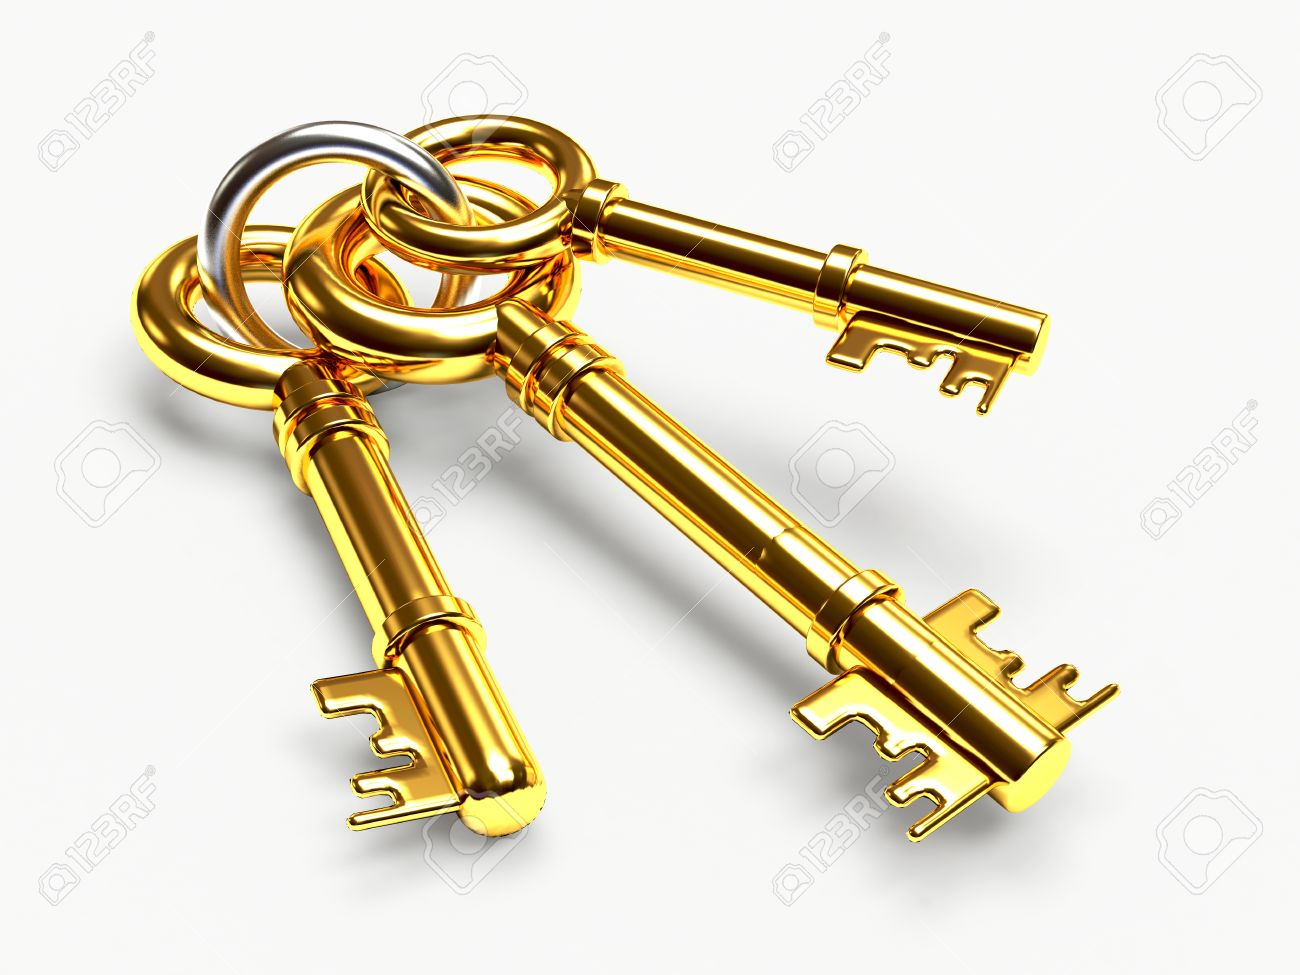 Image result for golden key